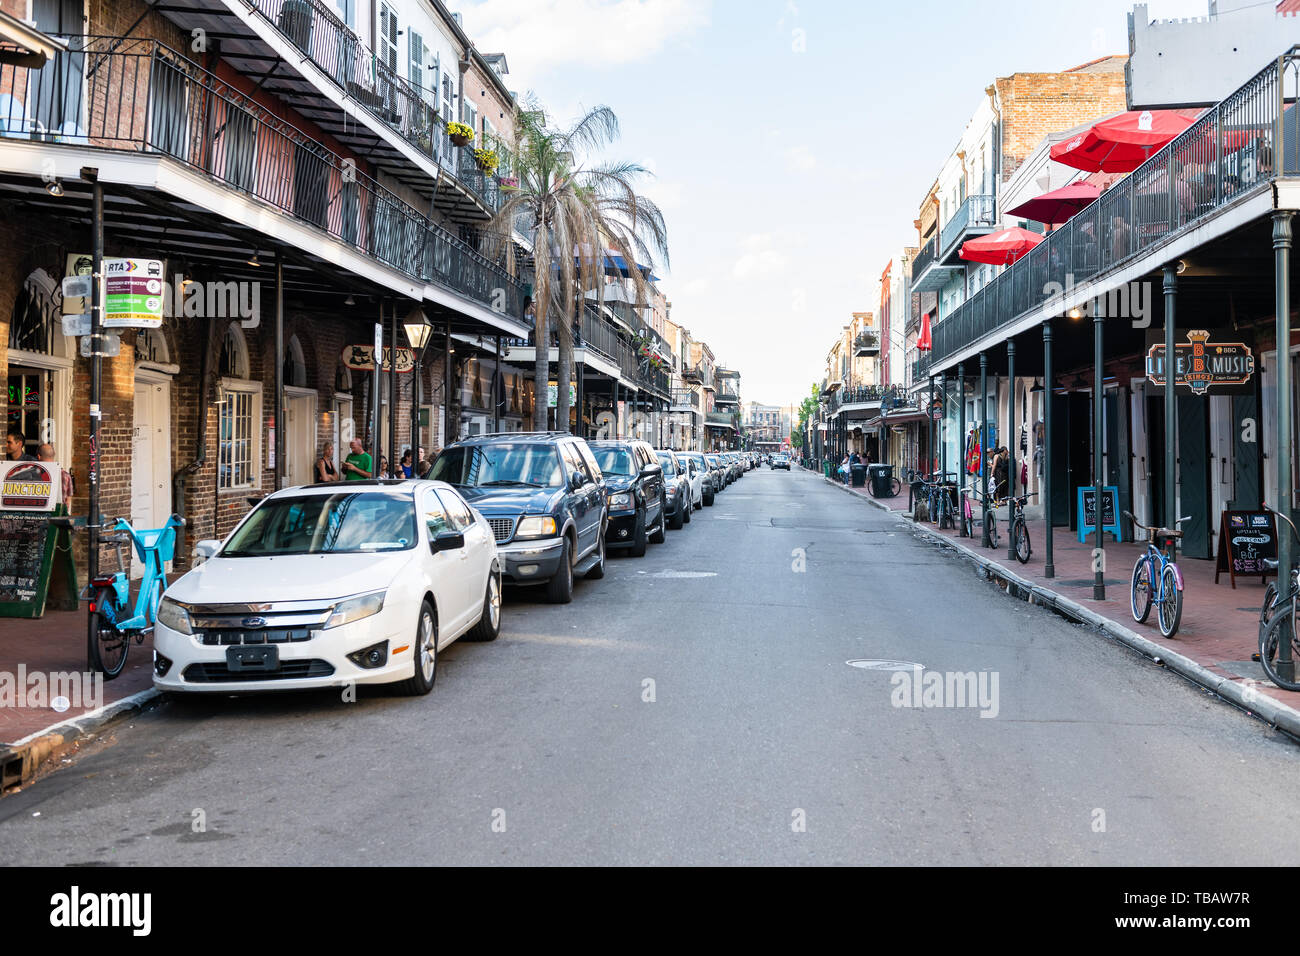 New Orleans, USA - April 22, 2018: Old town Decatur street in Louisiana city with cars parked during evening - Stock Image